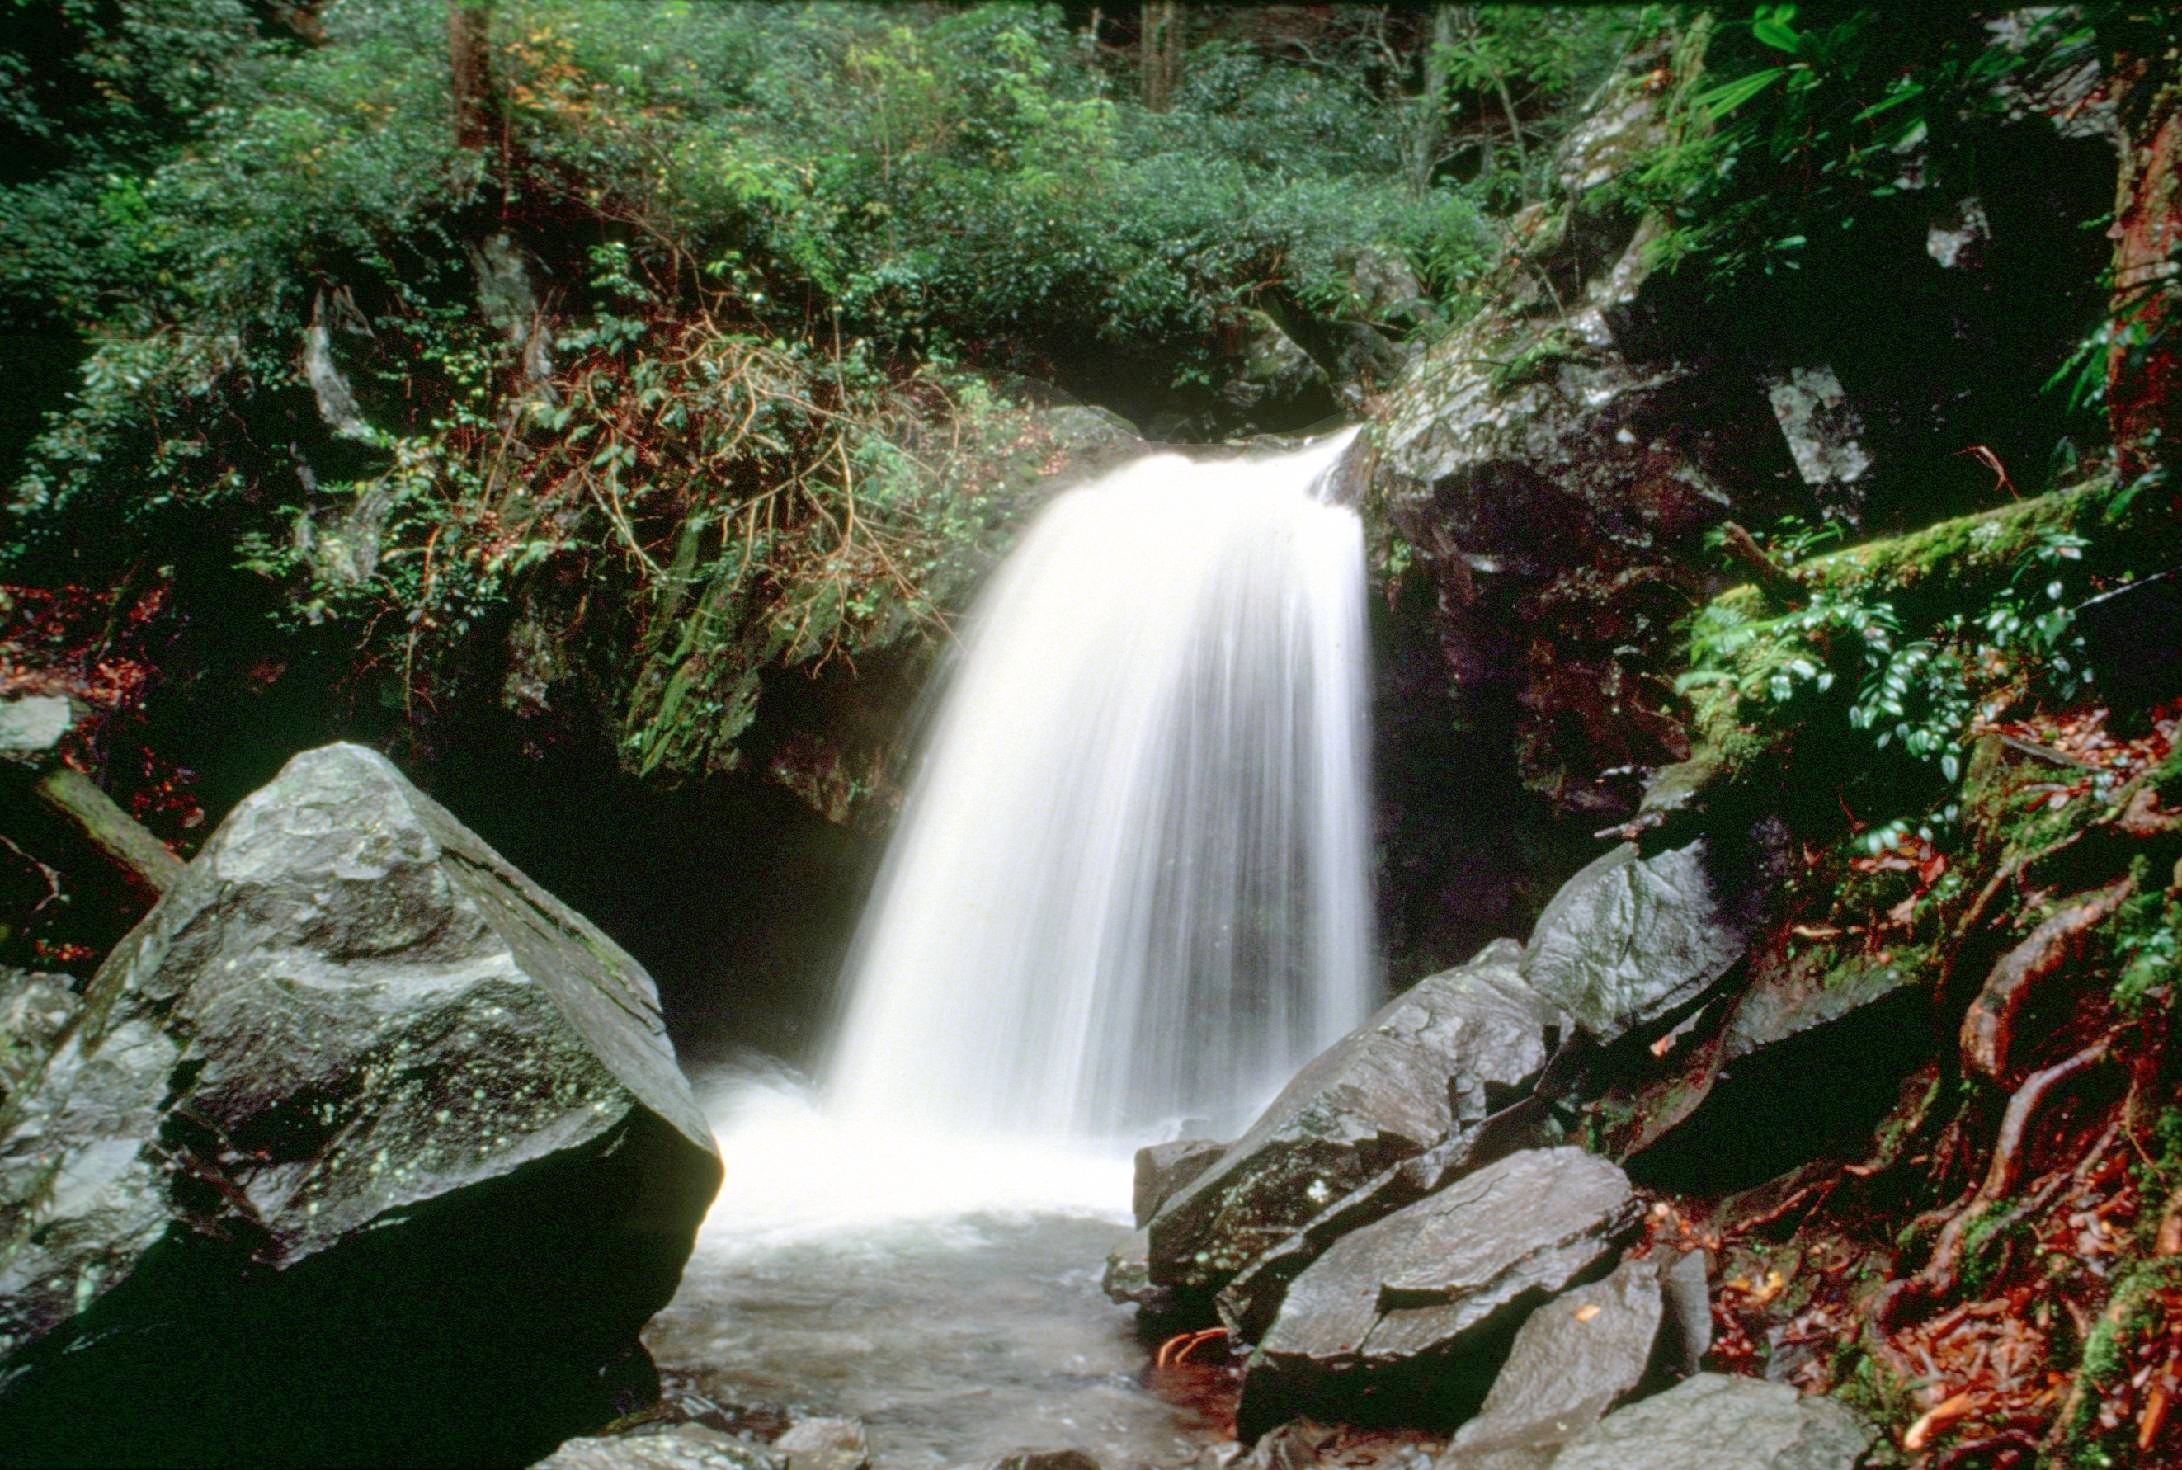 Find waterfalls near Sevierville - one of the free things to do in Sevierville TN